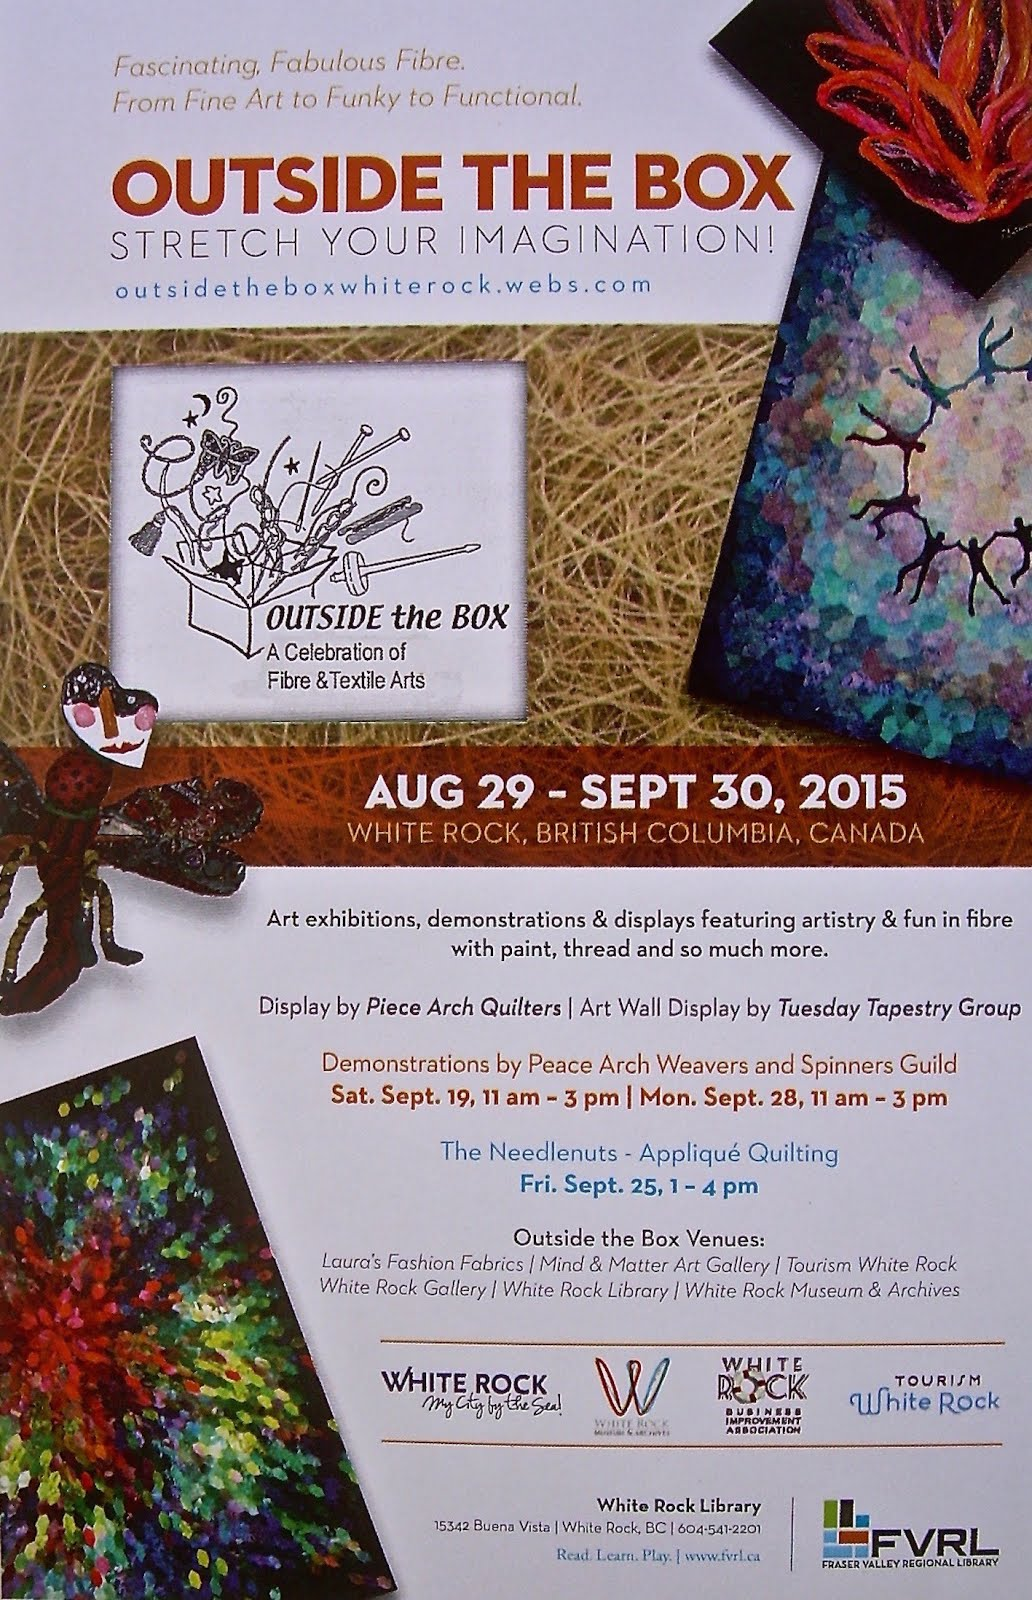 5th Annual OUTSIDE THE BOX Festival